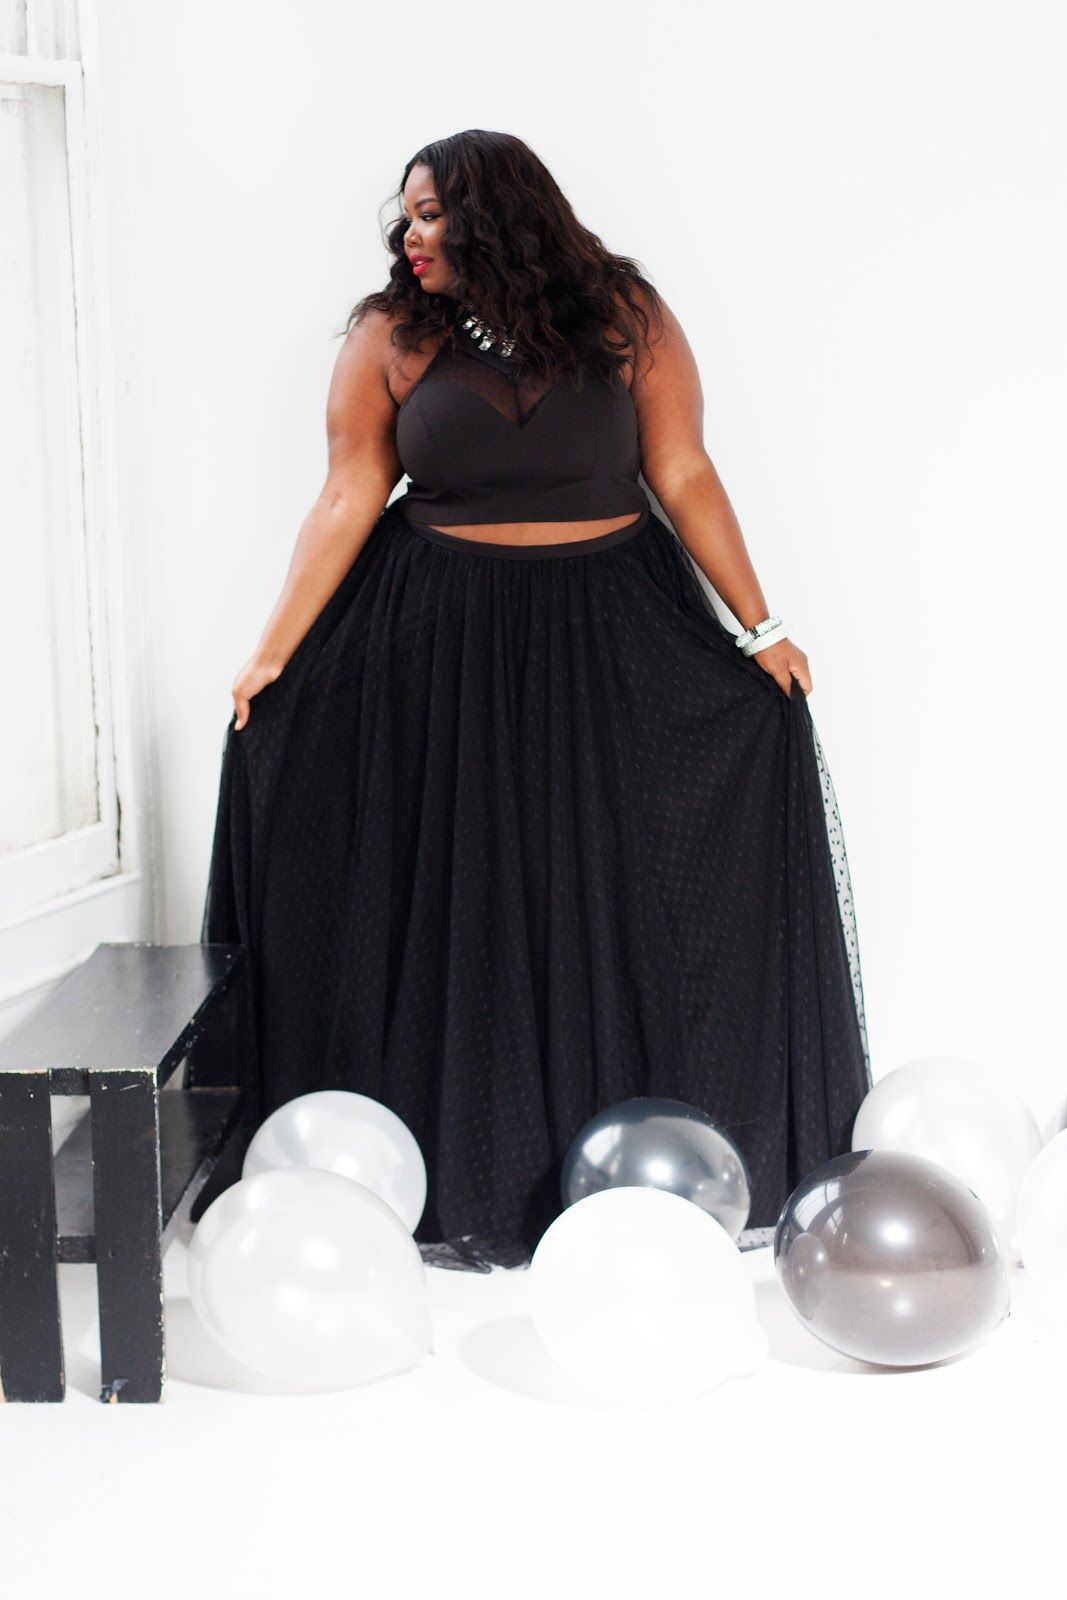 Happy Birthday TOOOOOO MEEEEEE! plus size fashion | My Personal ...